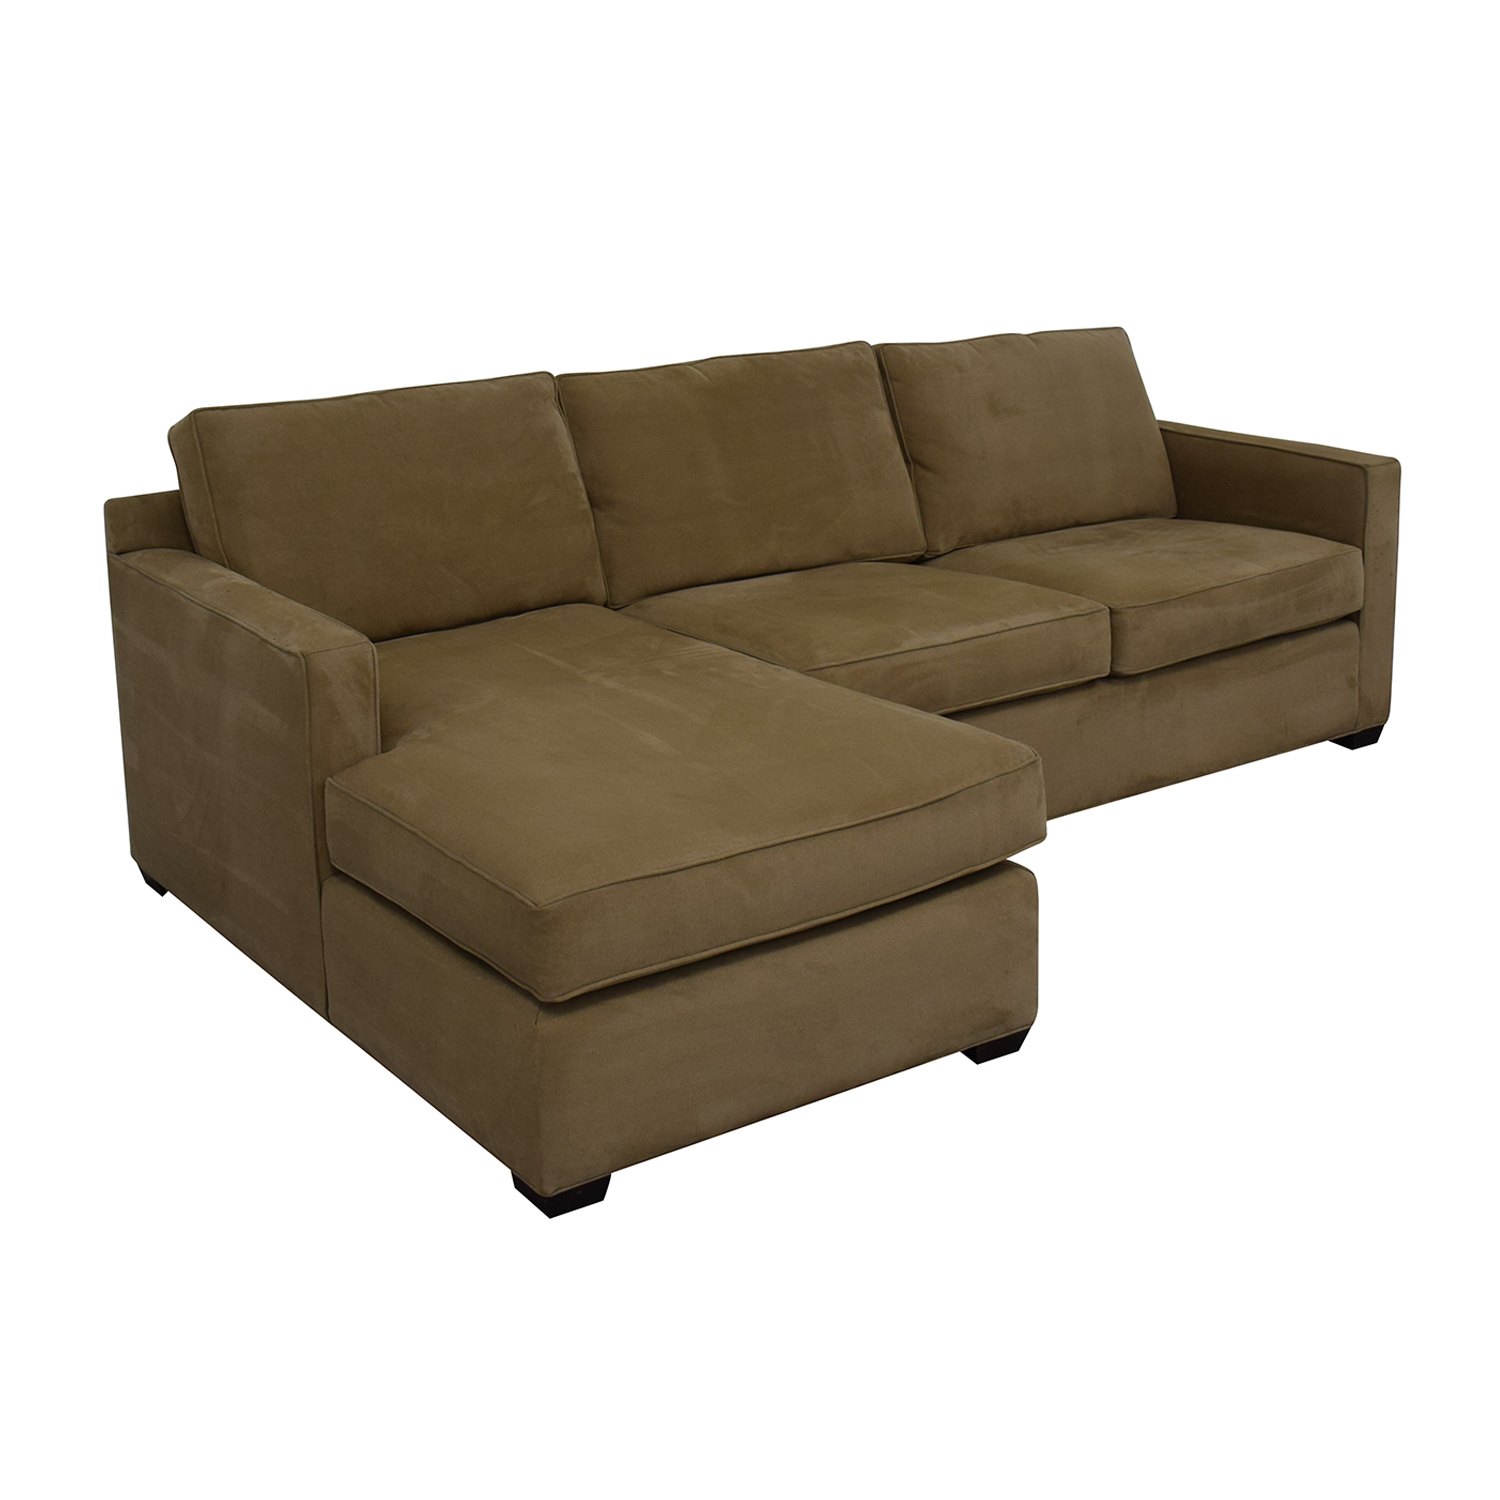 Crate & Barrel Crate & Barrel Left Chaise Sofa used